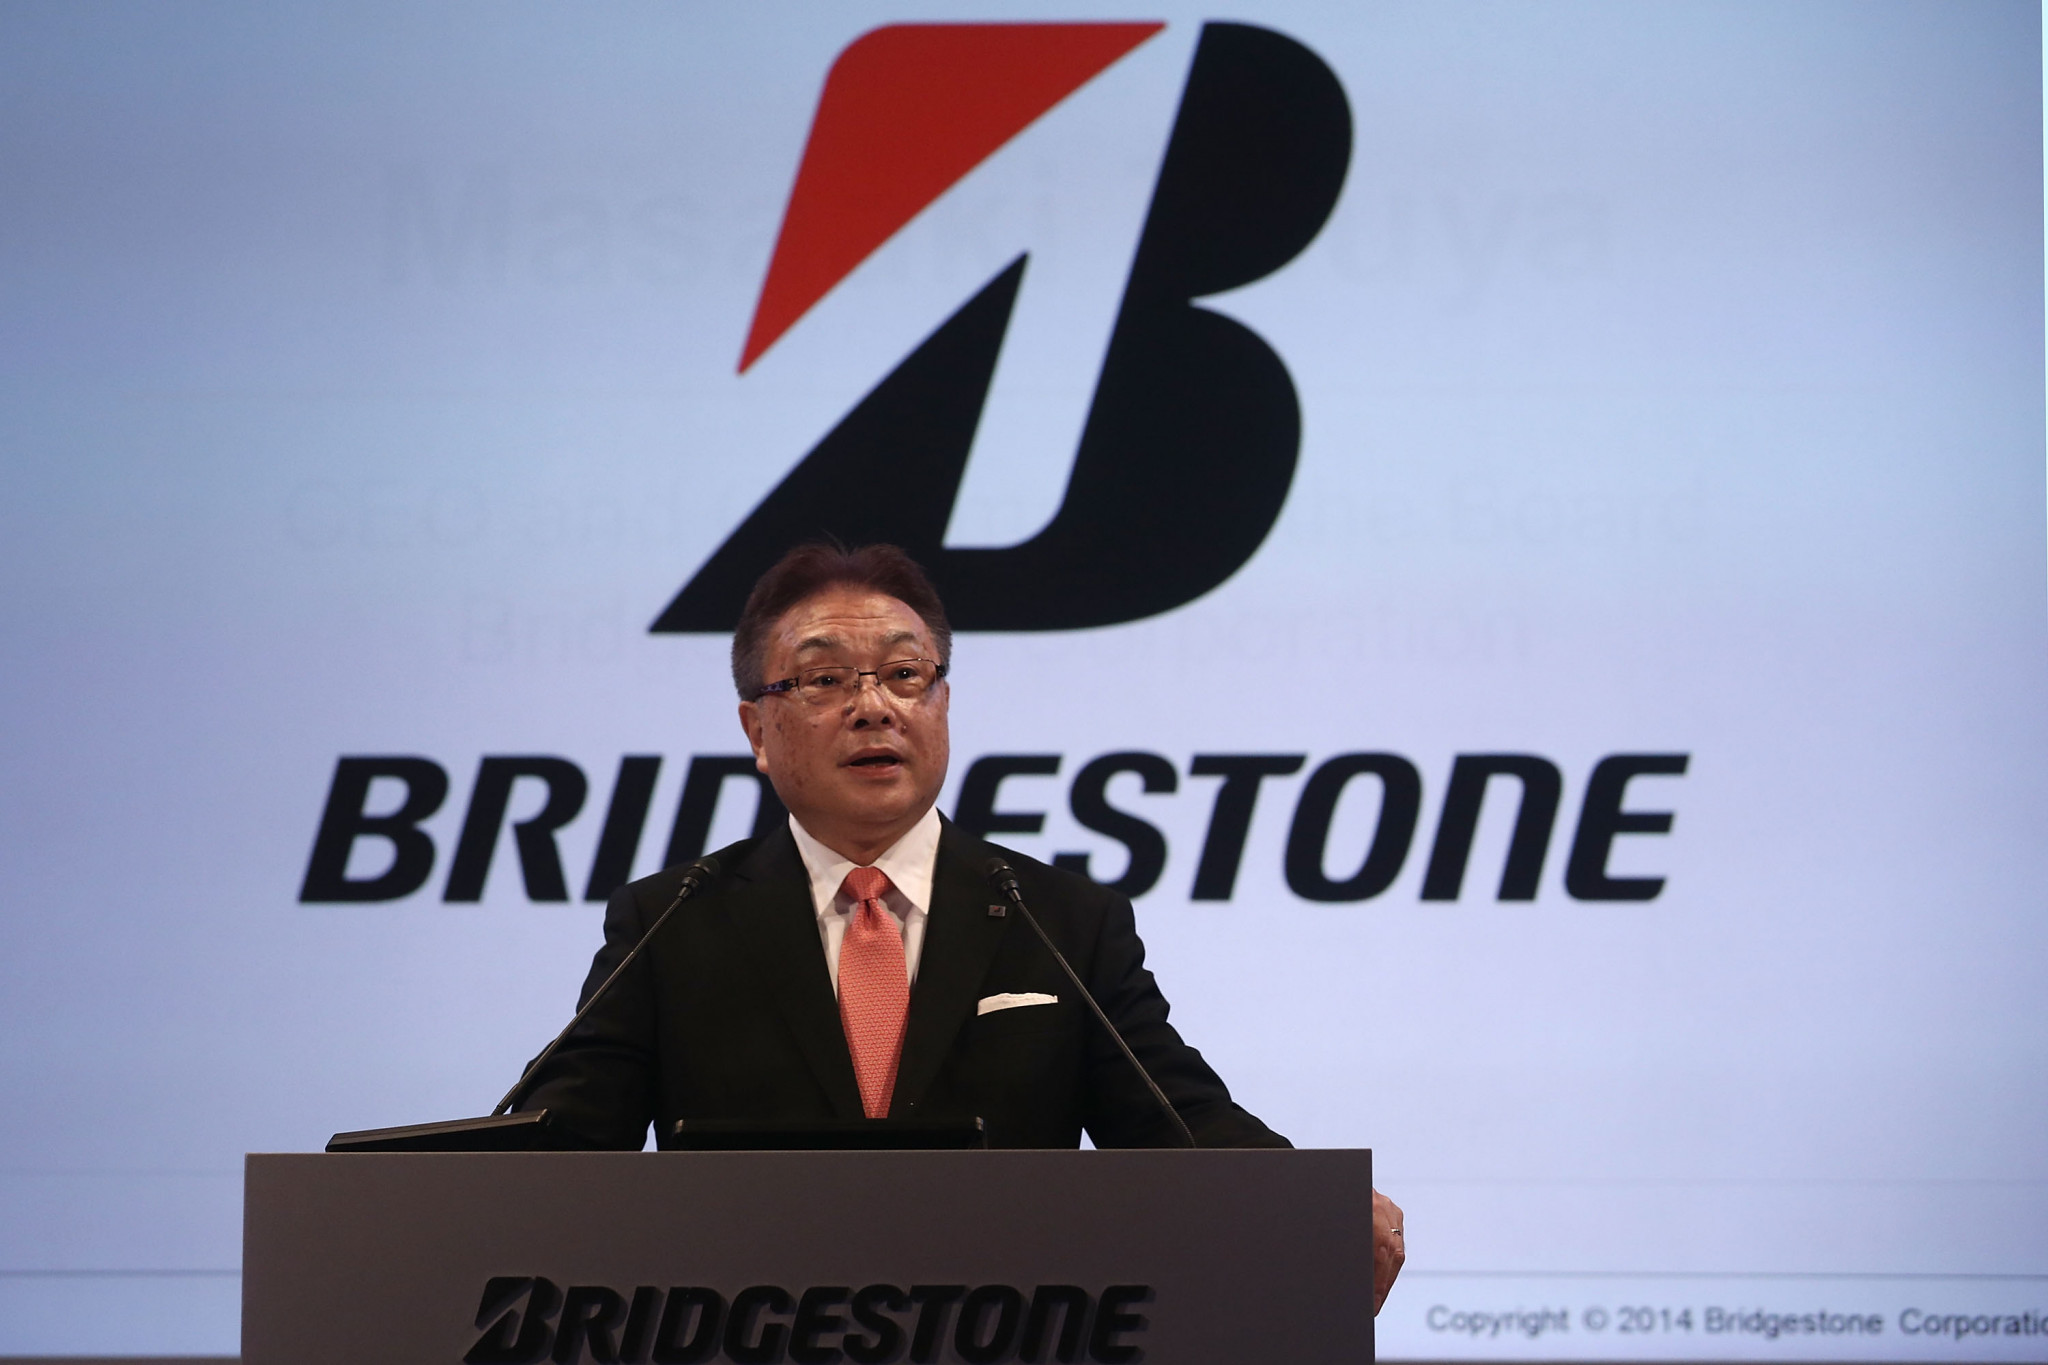 Masaaki Tsuya, chairman of the Board, chief executive and representative executive officer at Bridgestone Corporation, says Bridgestone Innovation Park will be the cornerstone of the company's next chapter ©Getty Images